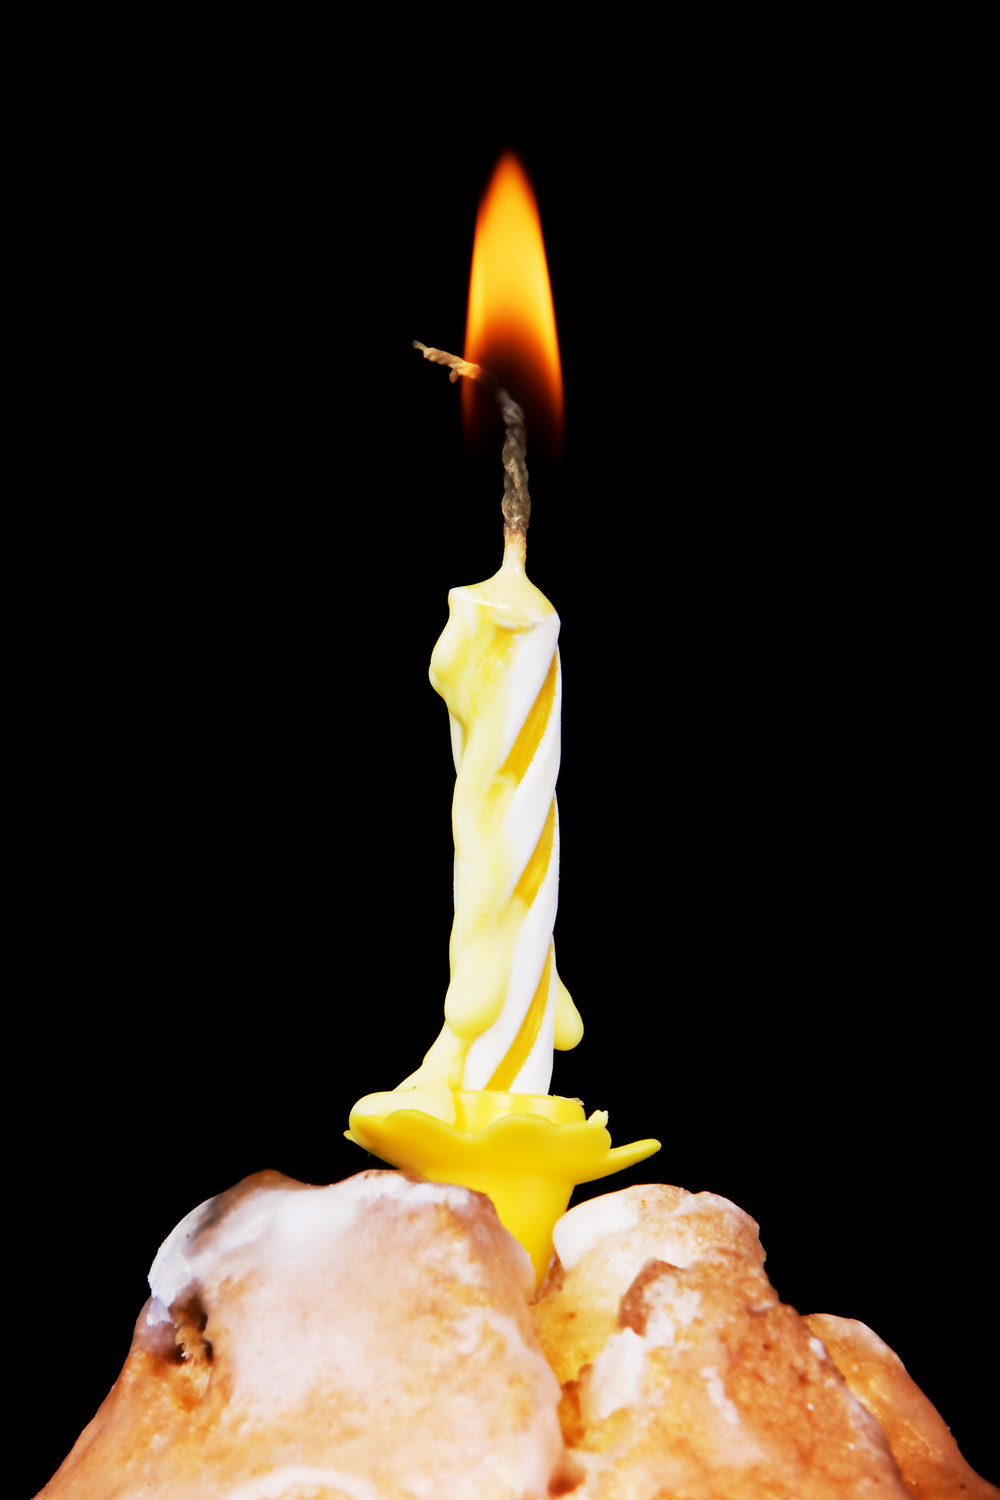 Cupcake with burning candle, Decorating, Treat, Sweet, Snack, HQ Photo